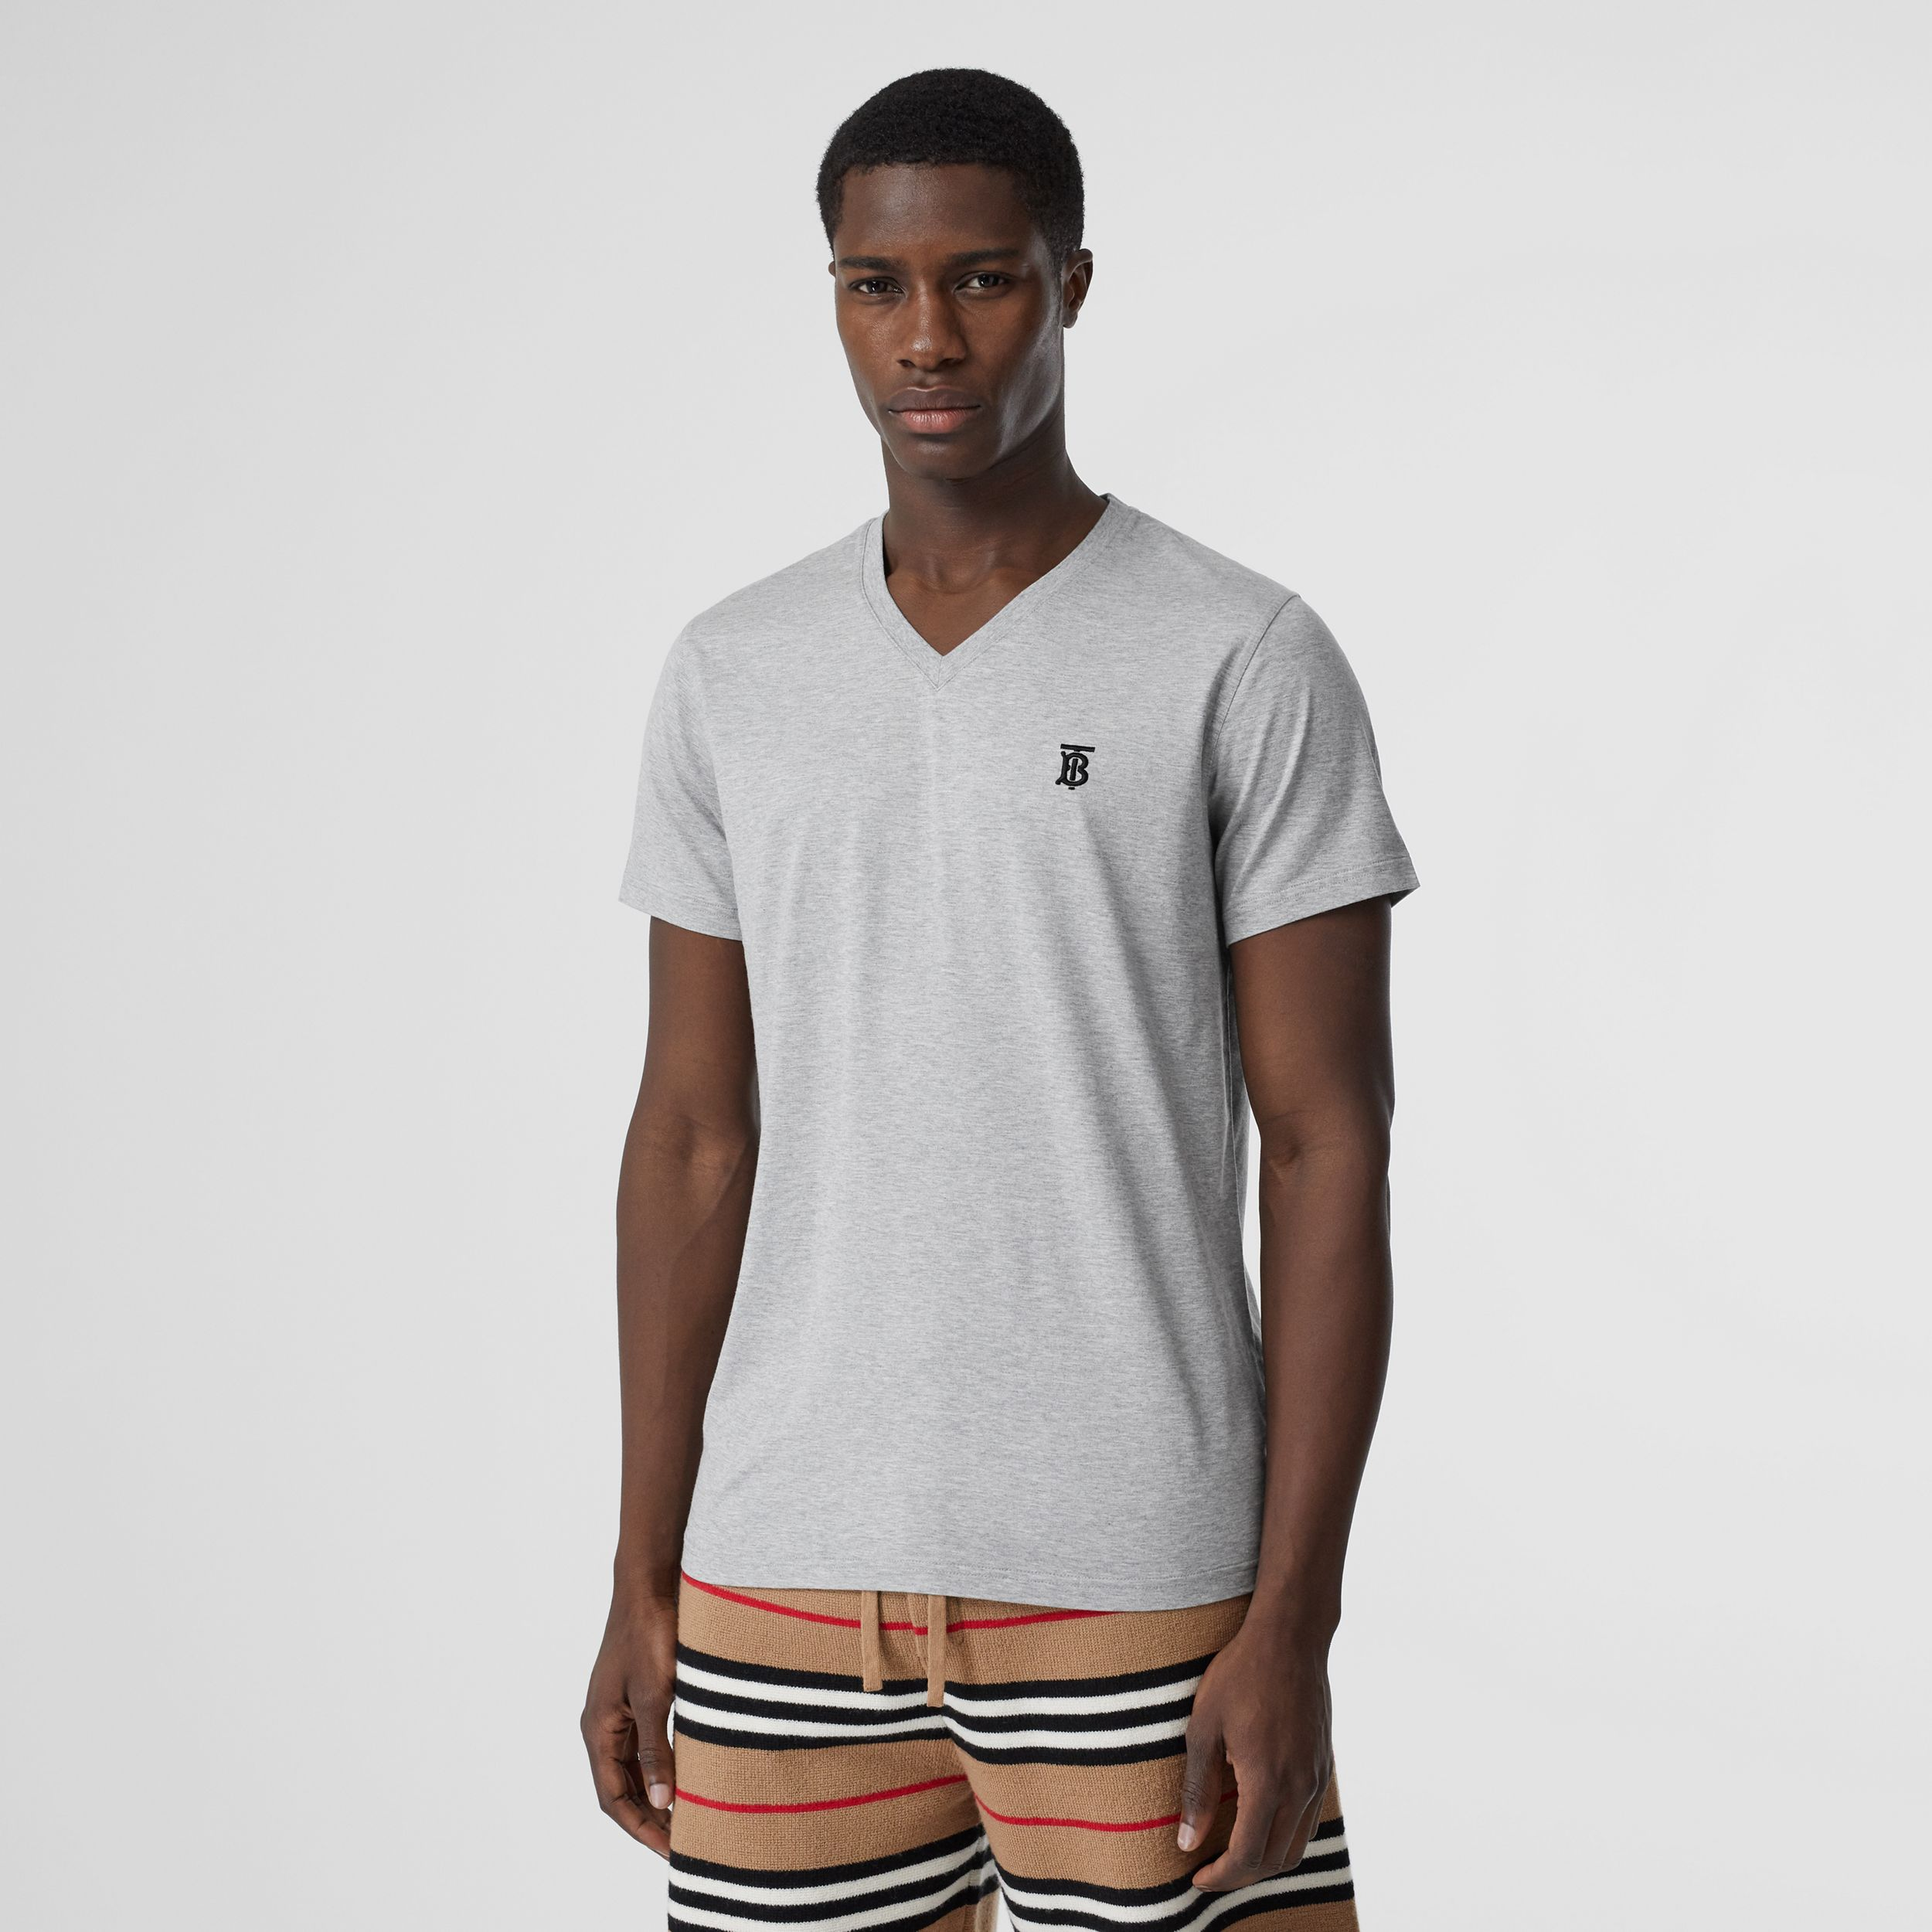 Monogram Motif Cotton V-neck T-shirt in Pale Grey Melange - Men | Burberry - 1